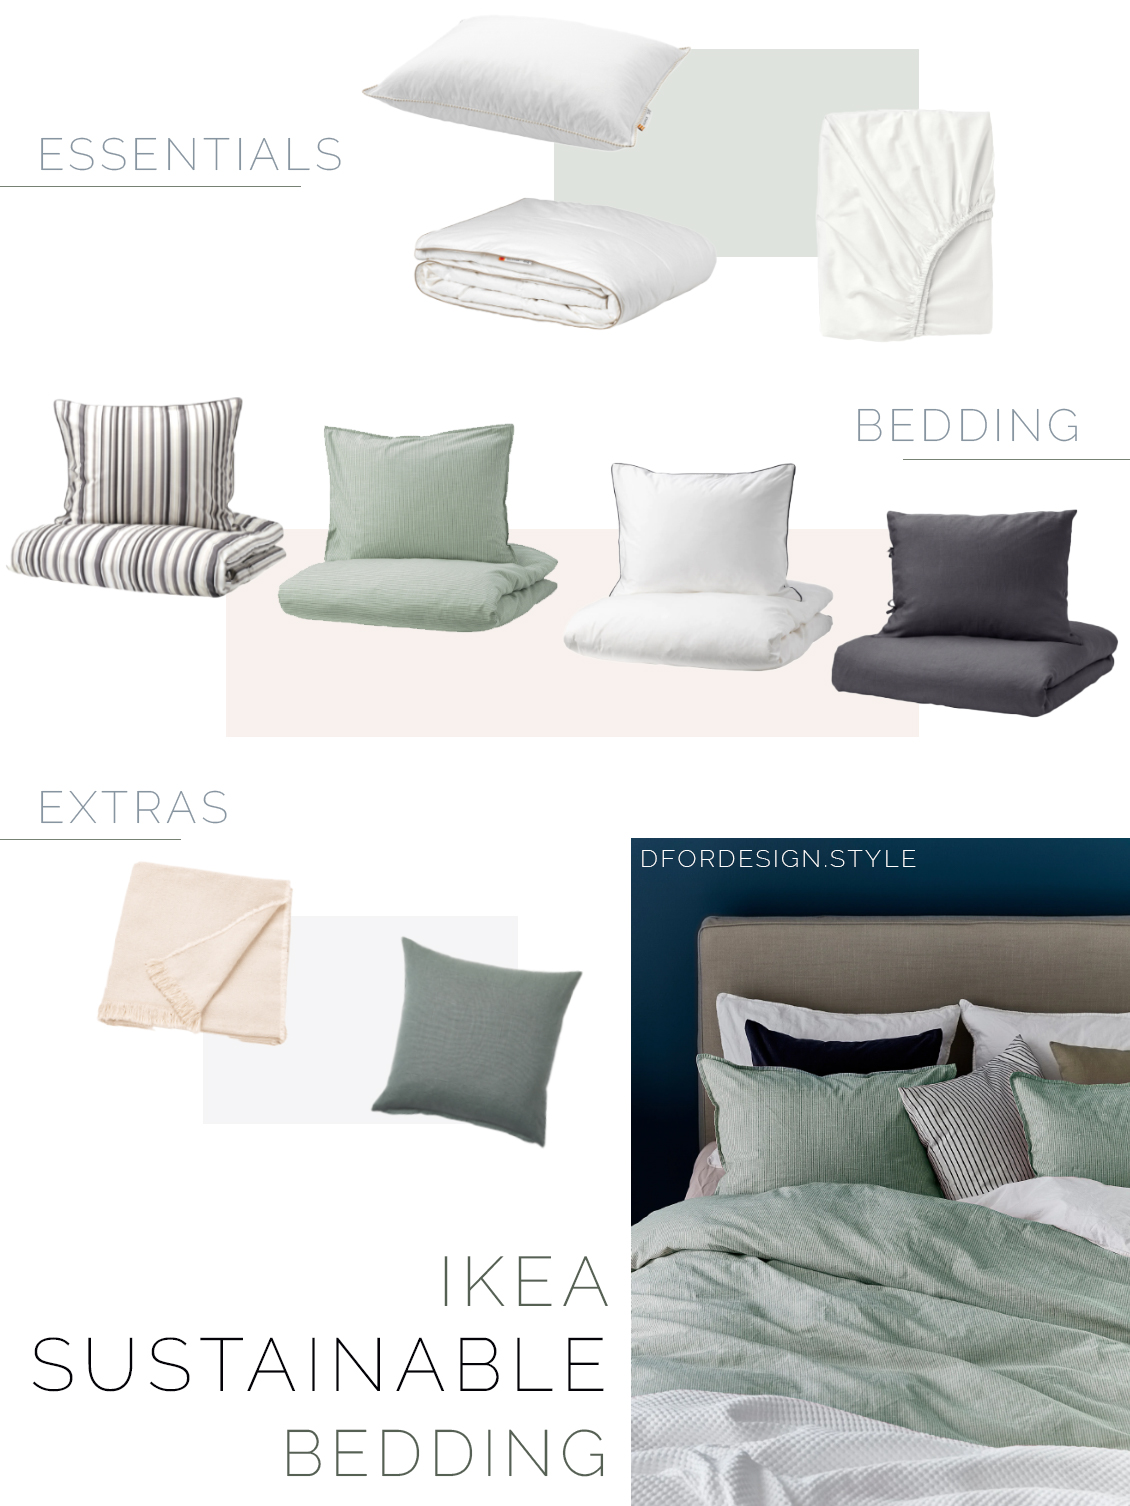 Moodboard showing a variety of sustainable products for the bedroom: from quilts and fitted sheets, to bedding, to throws and decorative cushions.